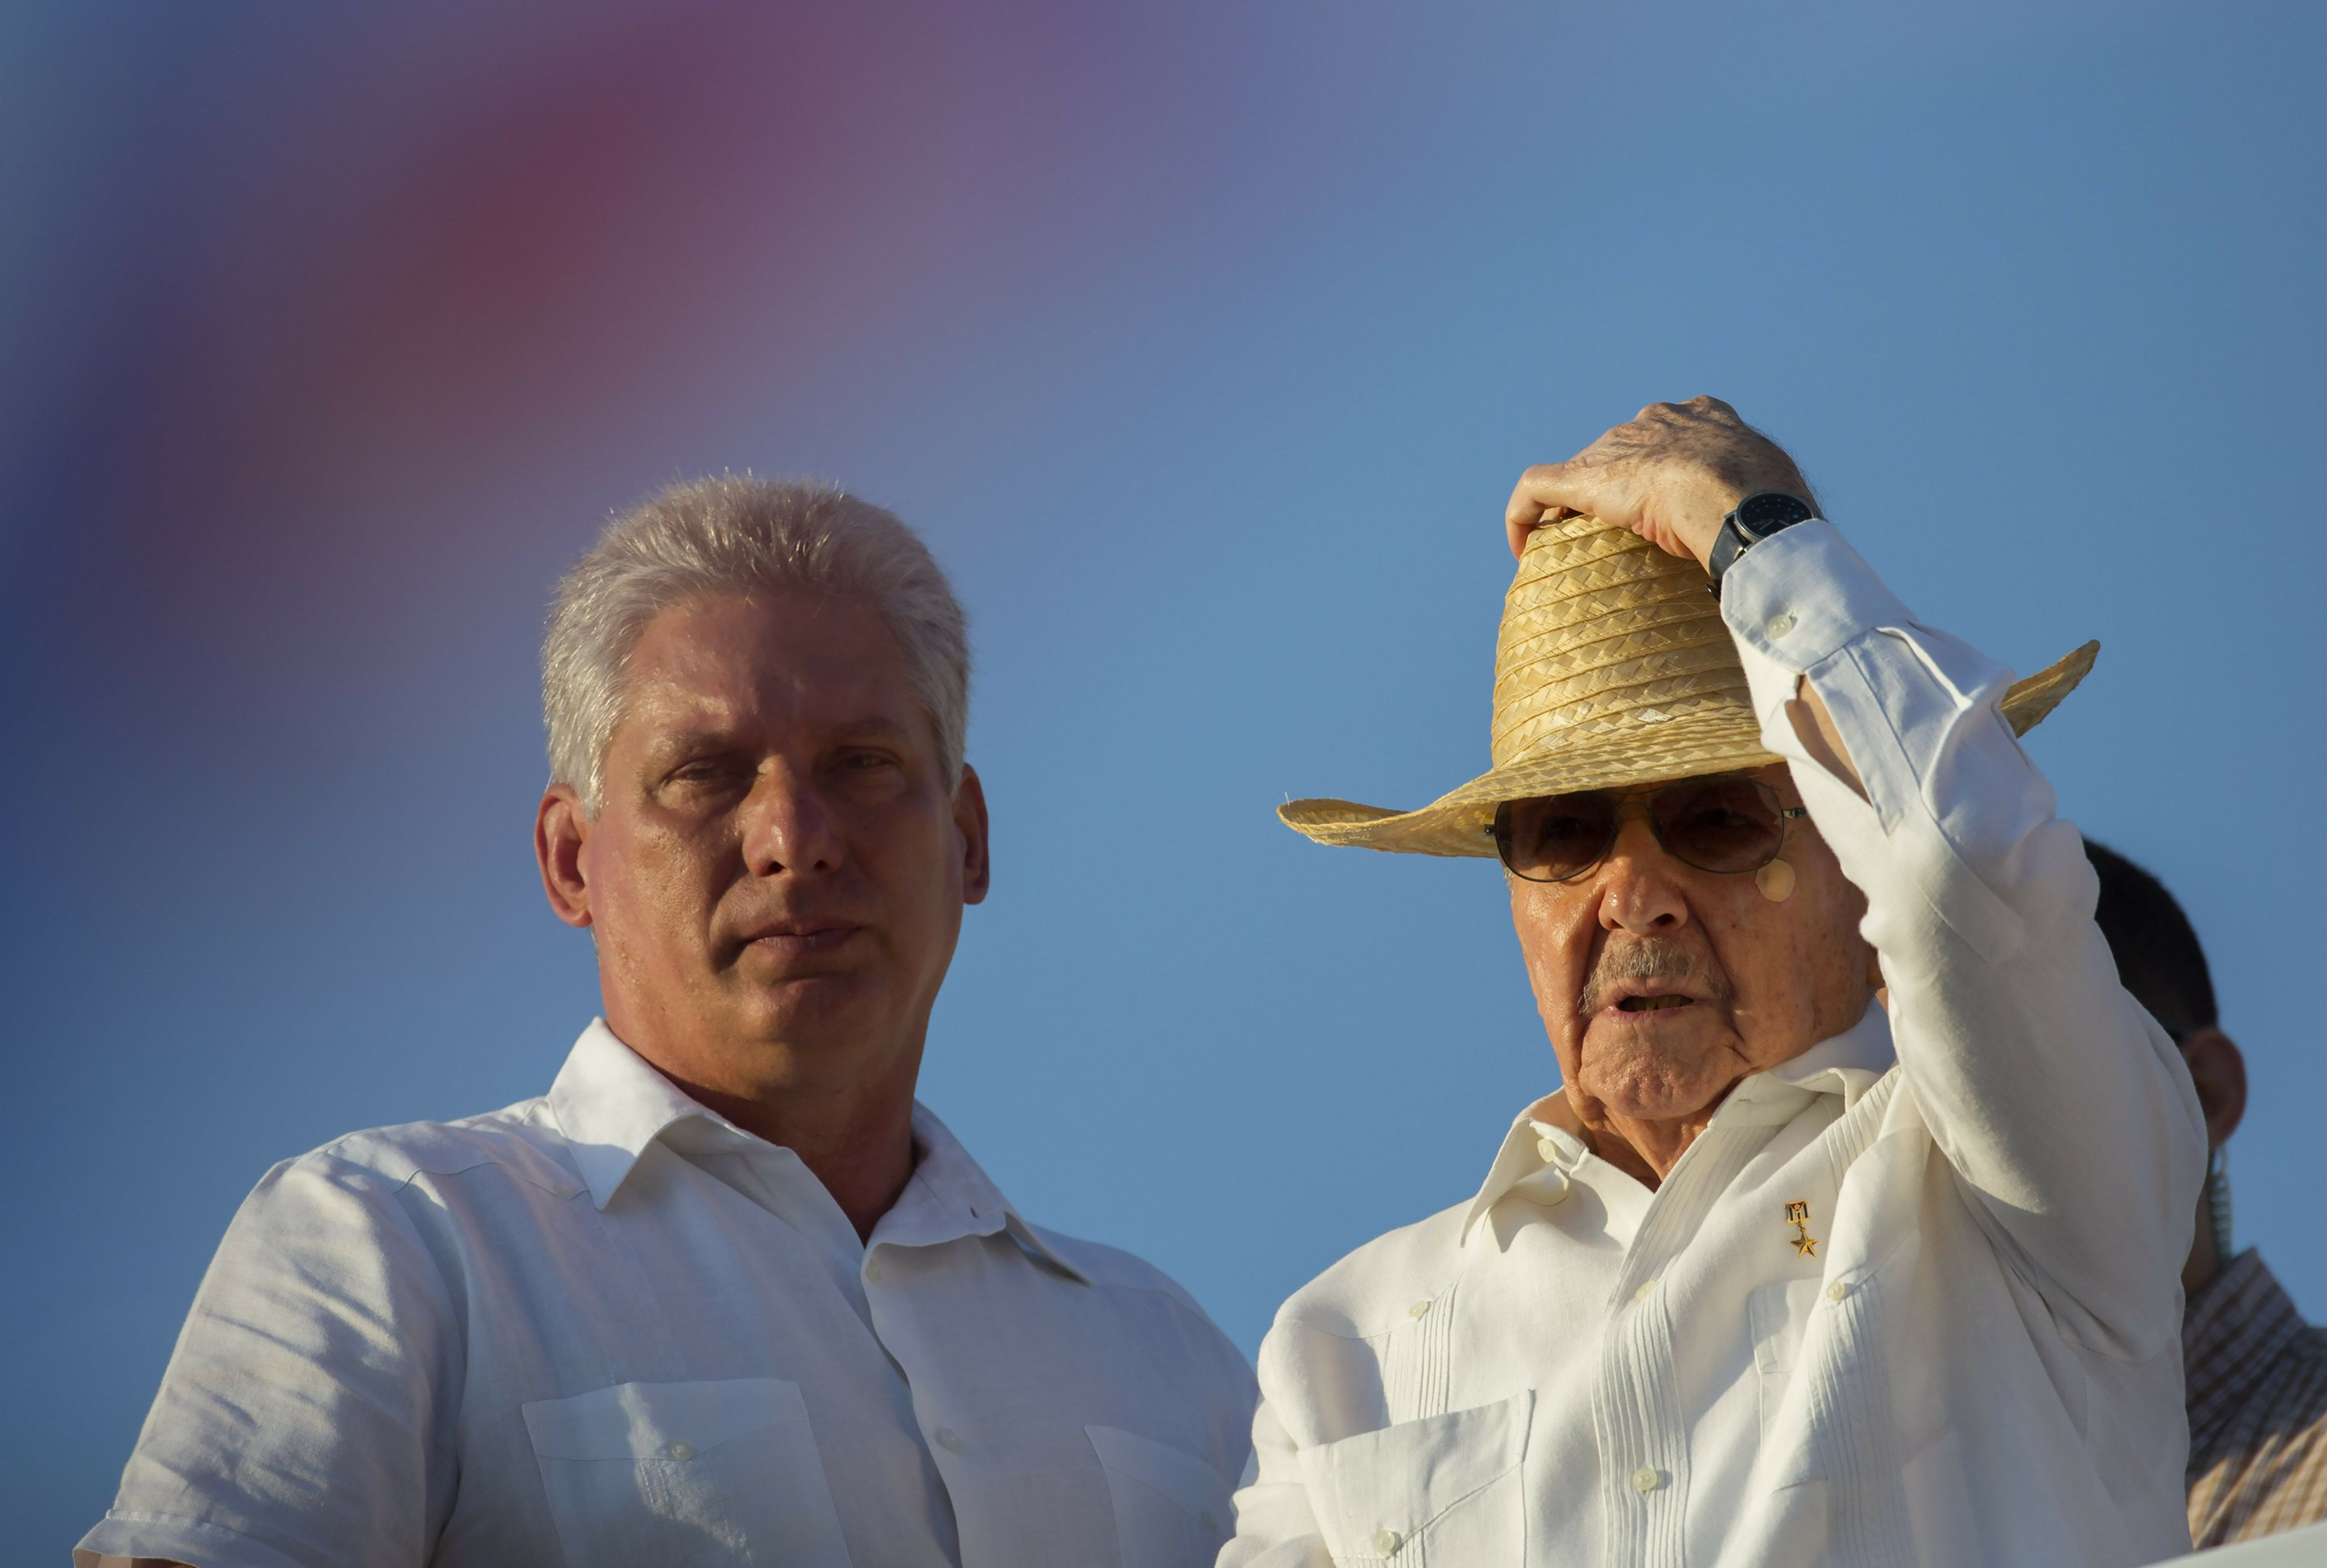 Cuba a year from getting new, non-Castro president